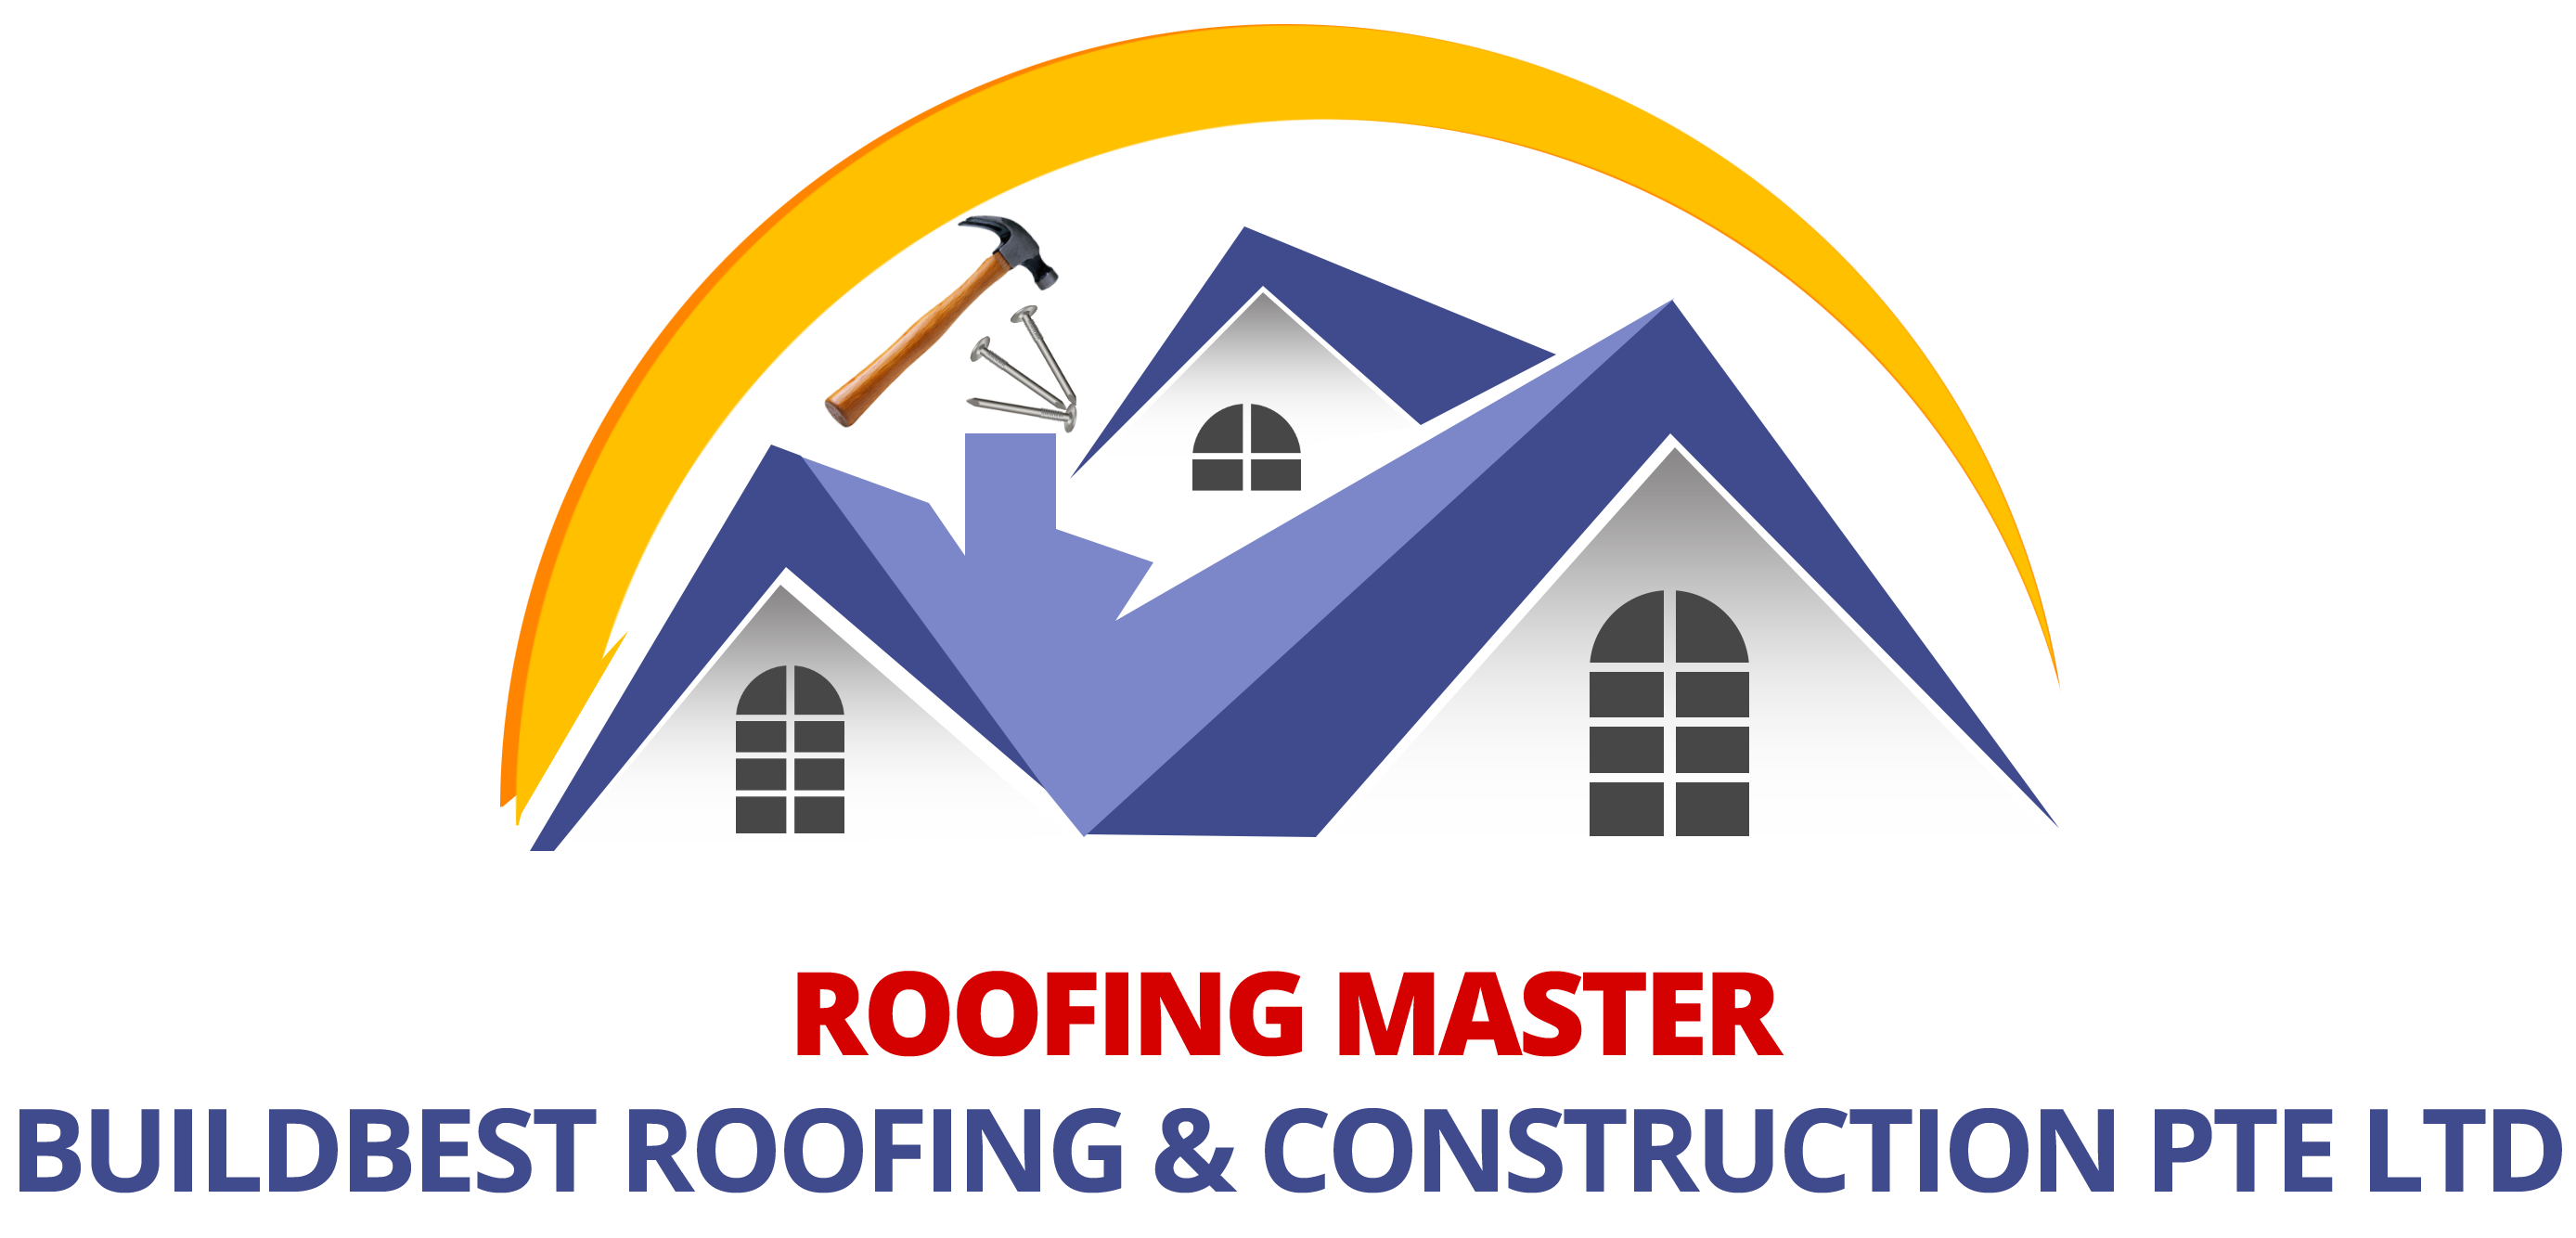 Roofing clipart housetop. Metal contractor buildbest construction